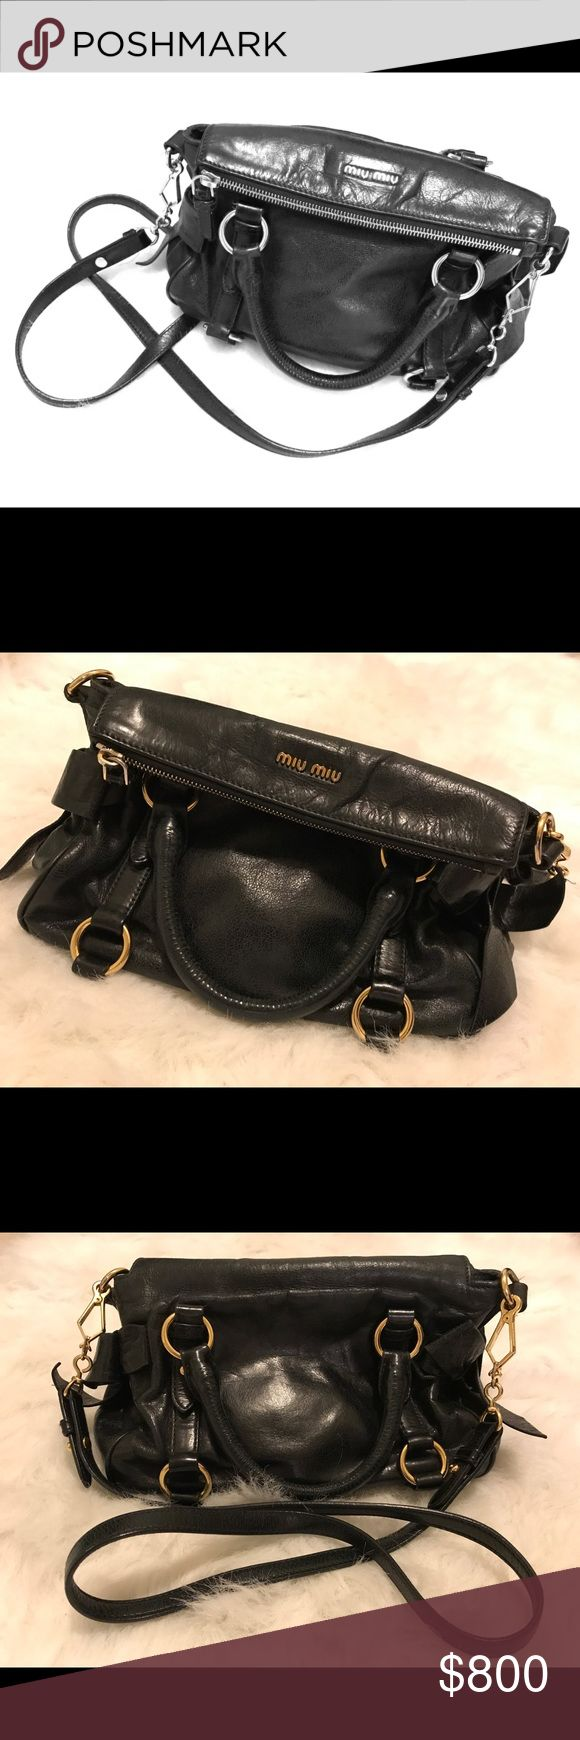 MIU MIU Black Medium Fold-Over Purse MIU MIU BLACK FOLD-OVER LEATHER SATCHEL/SHOULDER BAG/CROSSBODY PURSE - 100% Authentic - Removable straps for versatility - dust bag included - Please see photos and reach out with questions. Thank you! Miu Miu Bags Shoulder Bags